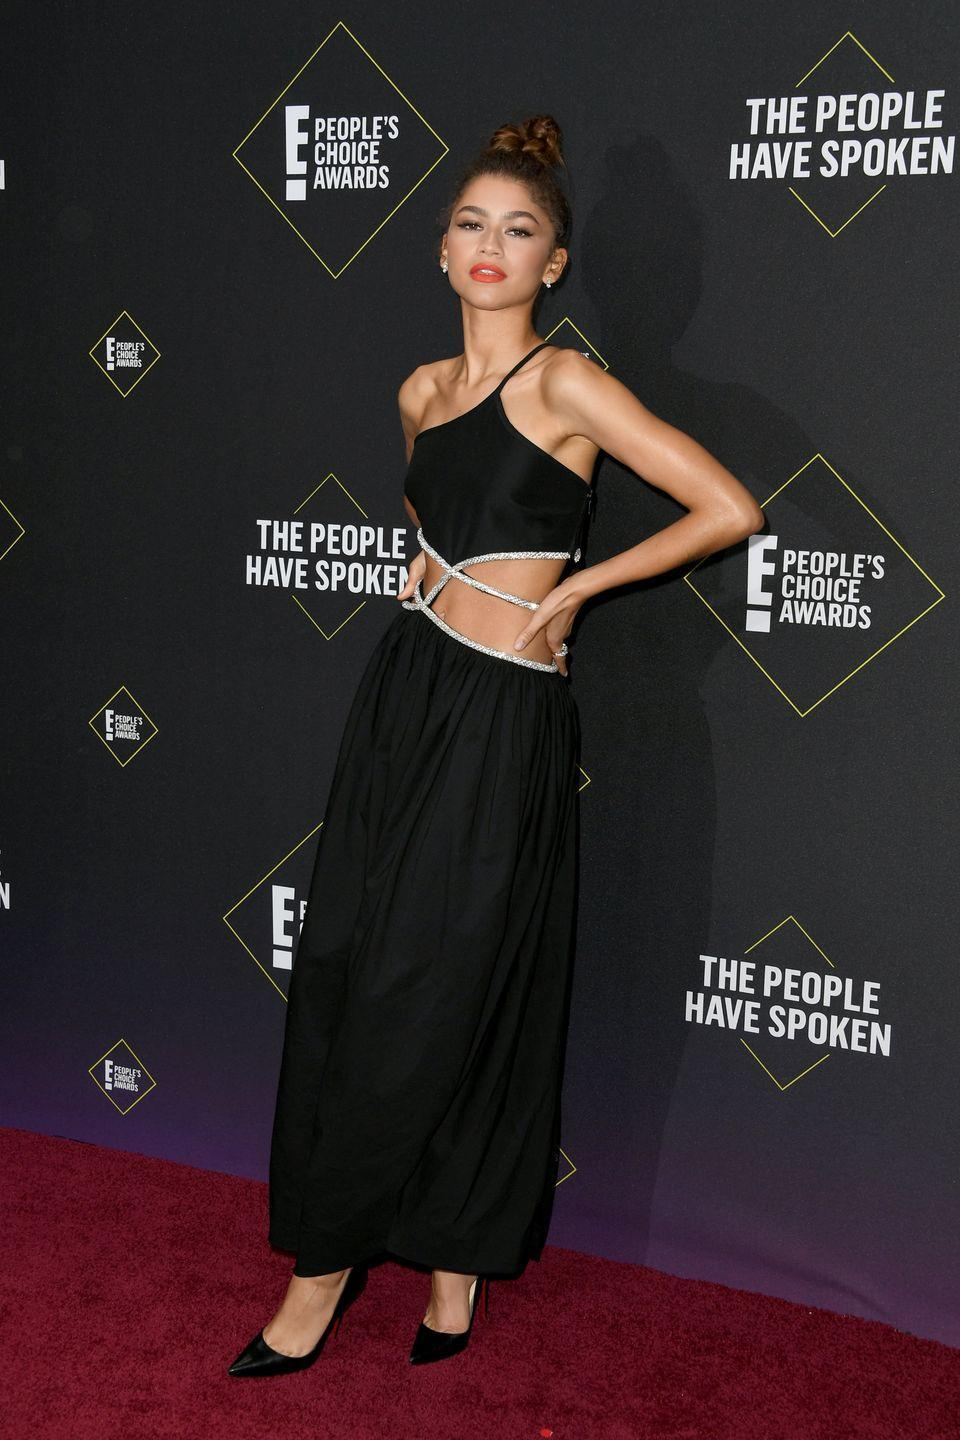 <p>She pulled up to the 2019 People's Choice Awards ready to show off some shoulder. This black gown from Christopher Esber also featured super cool metallic-trimmed cutouts.</p>